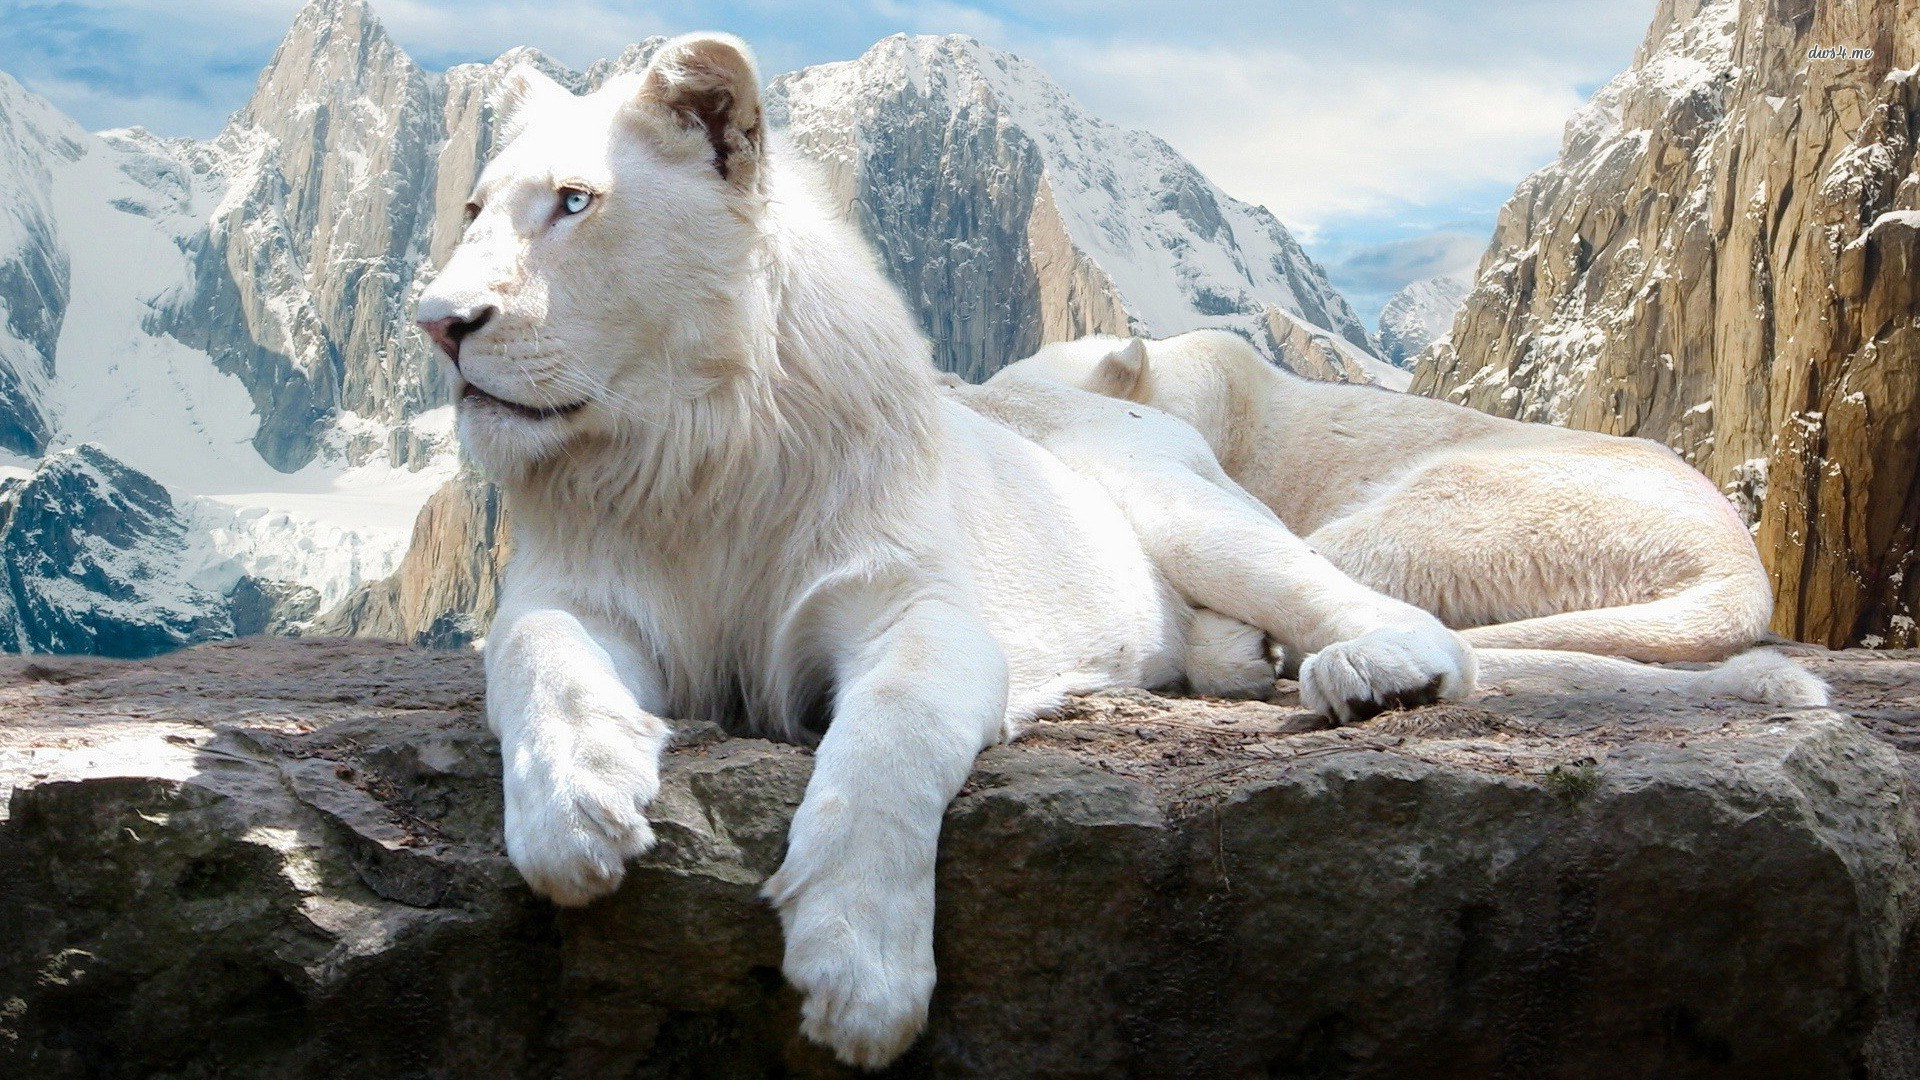 1920x1080-free-desktop-downloads-white-lion-wallpaper-wpc580728